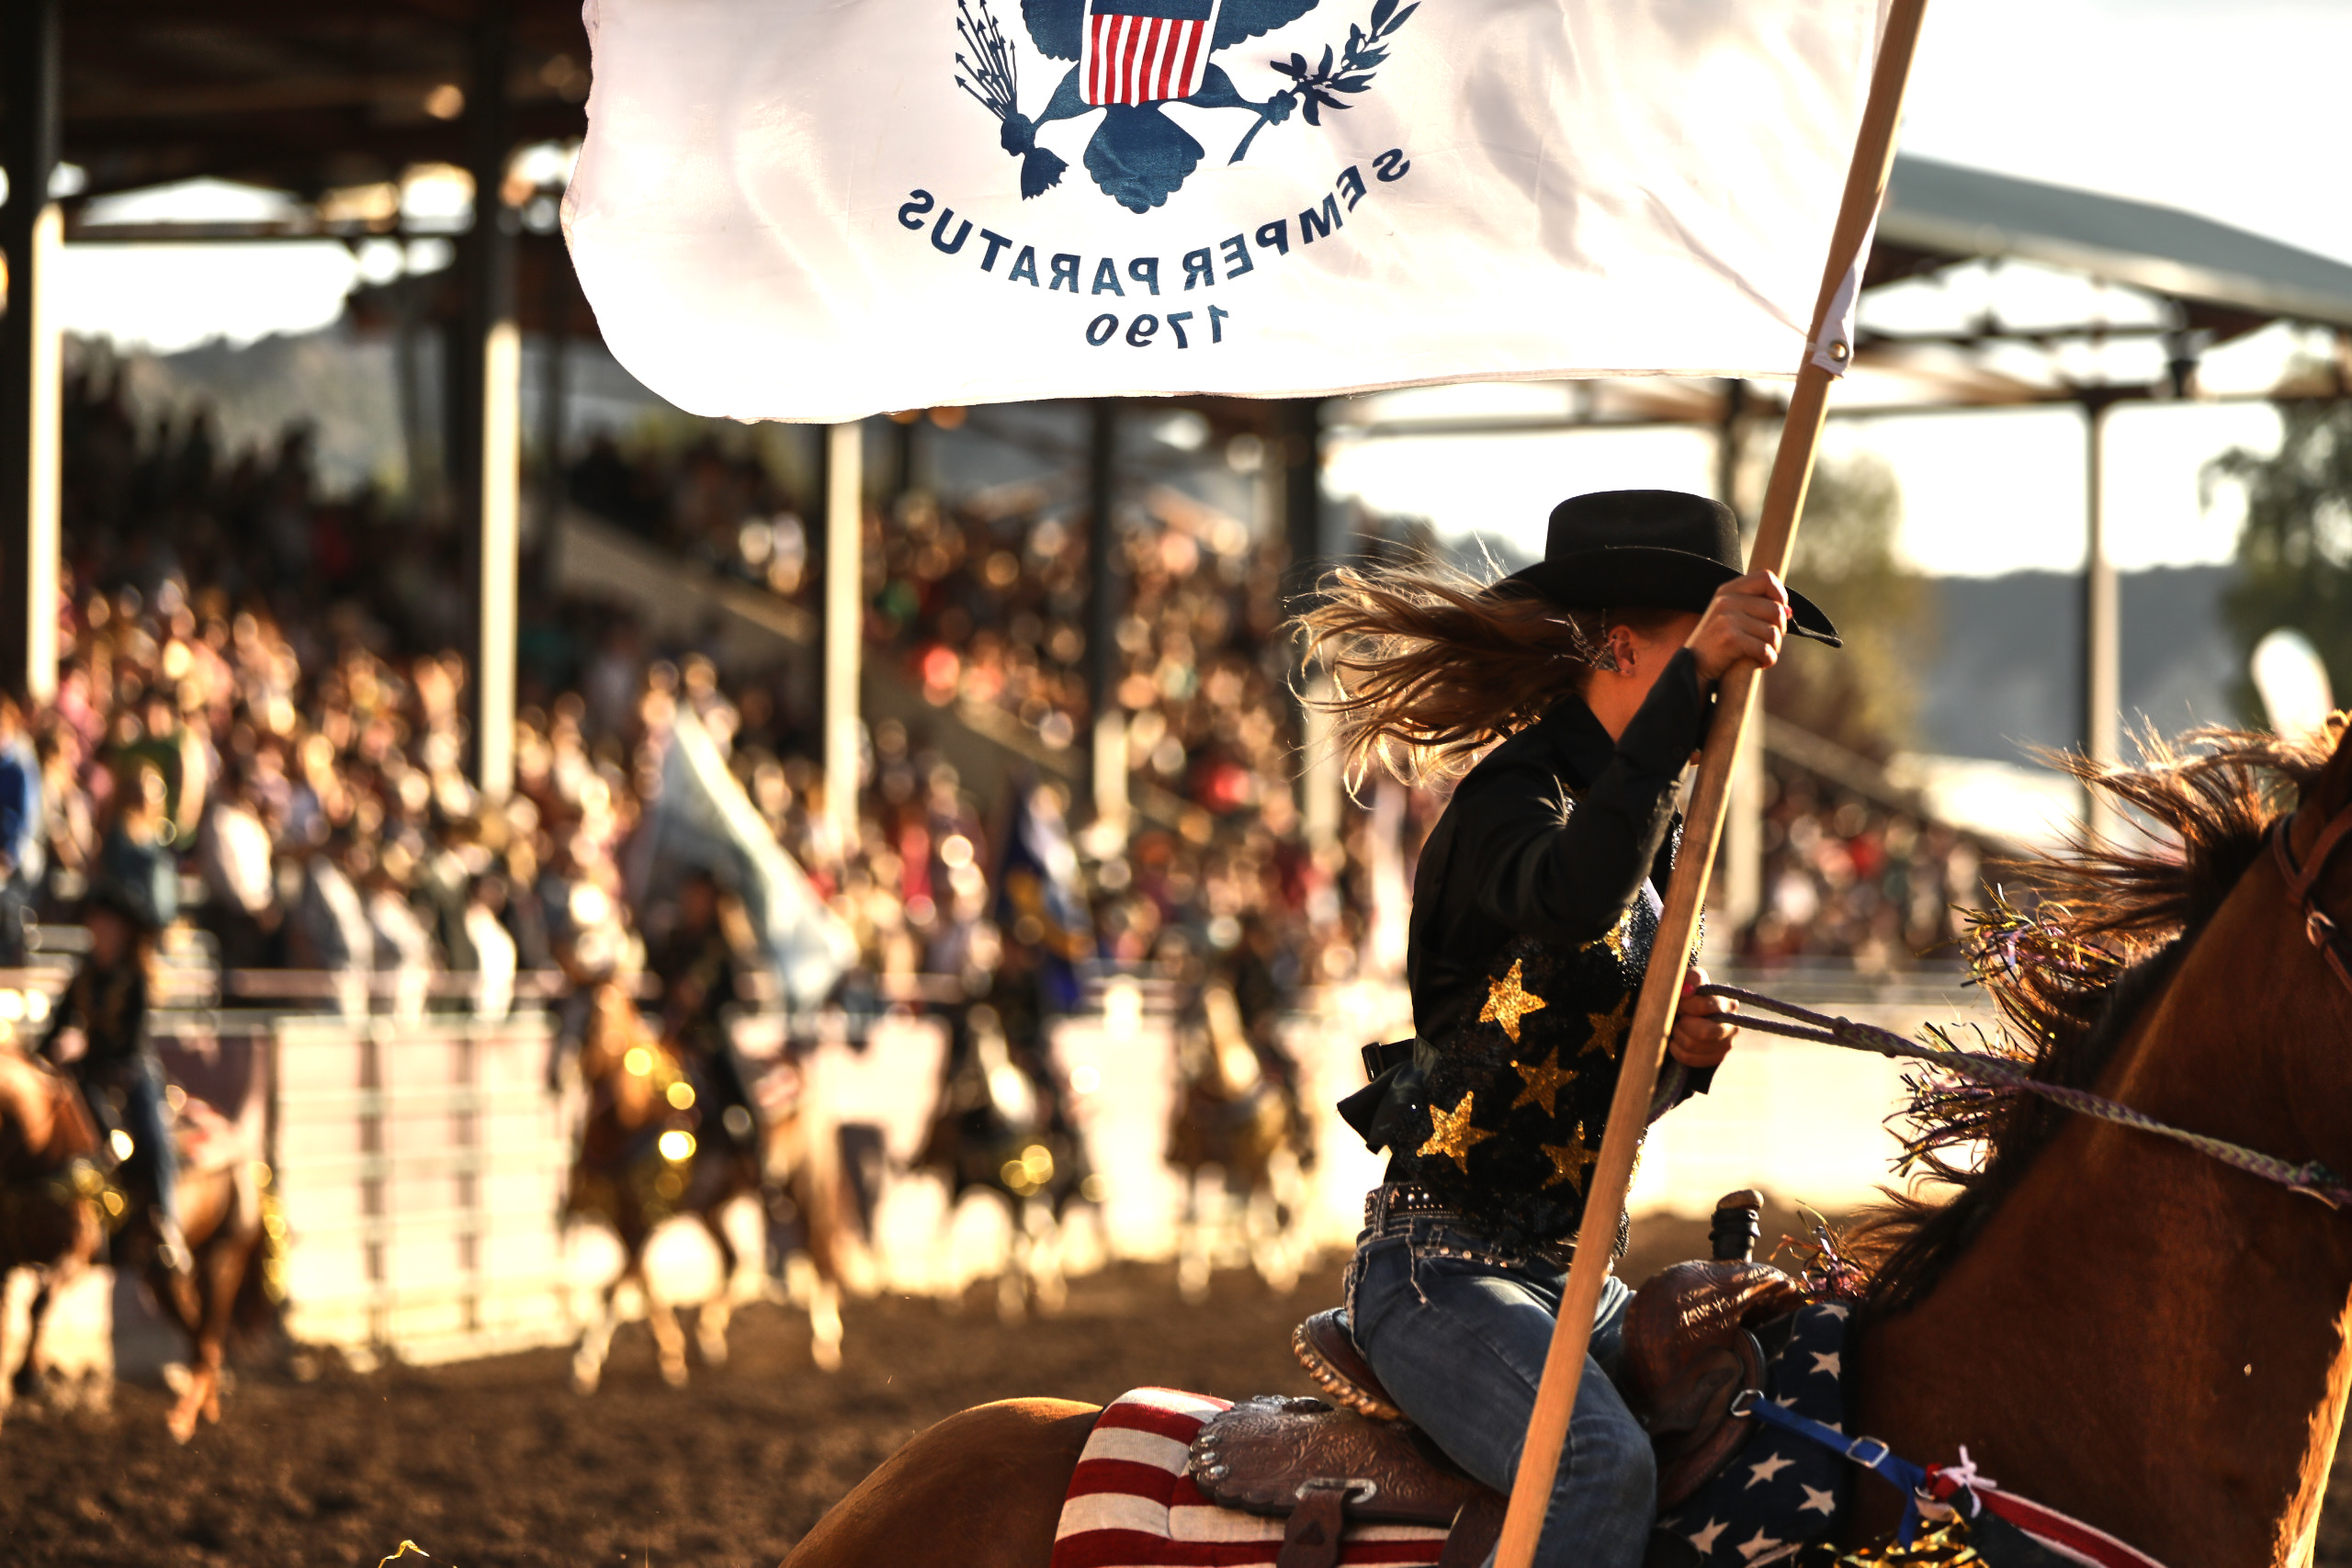 Eagle rodeo in eagle colorado girl riding with flag